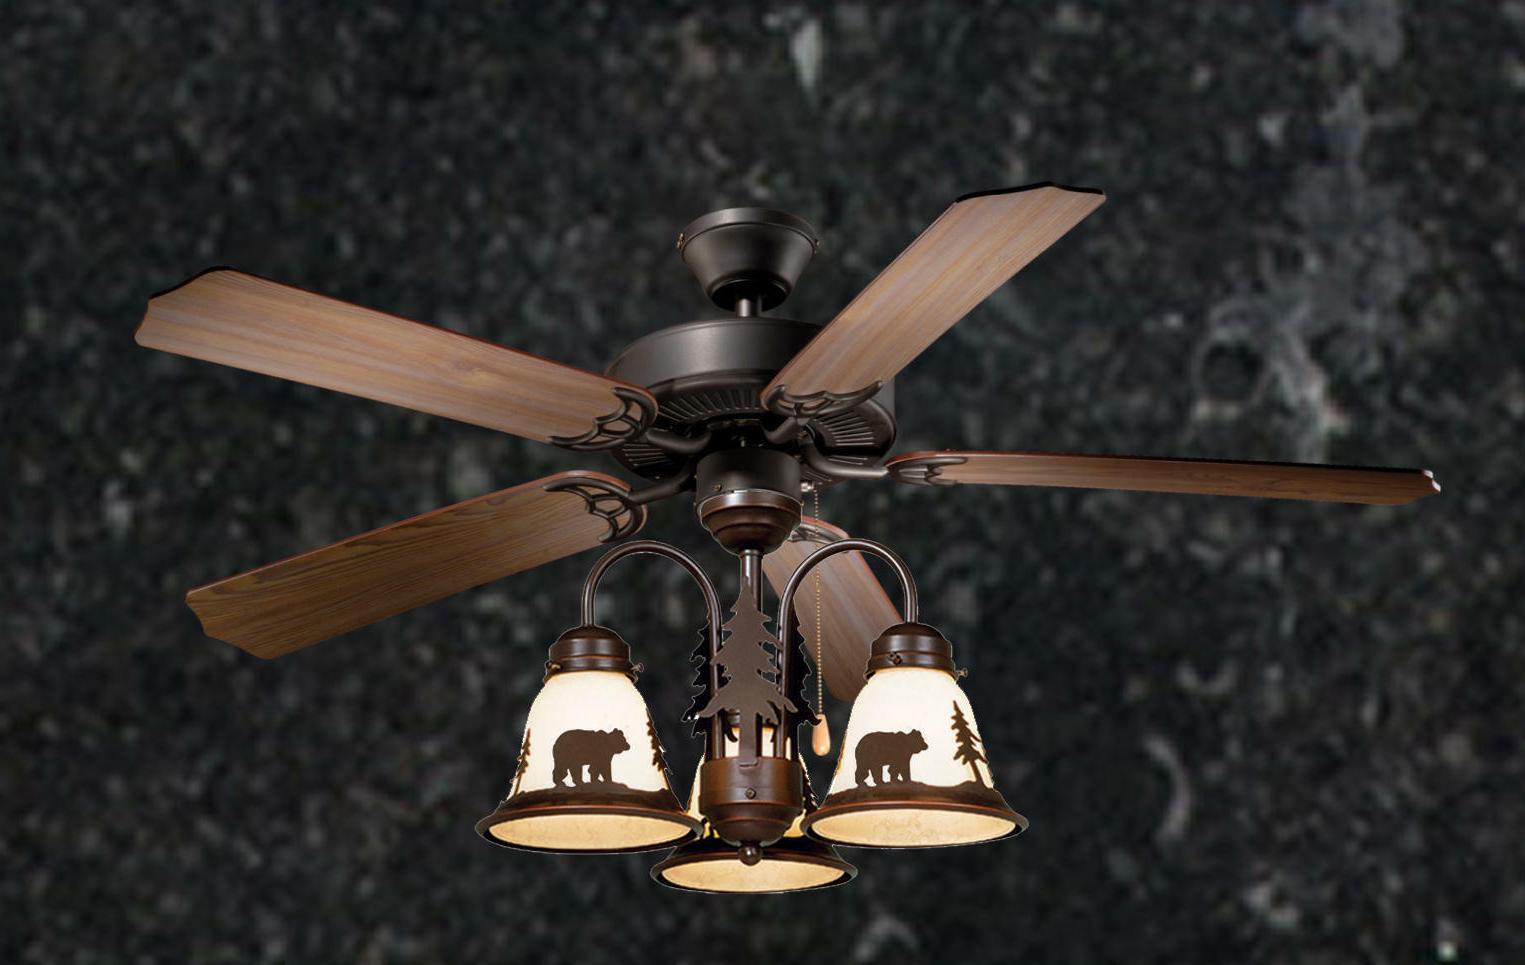 52 lodge rustic cabin country ceiling fan